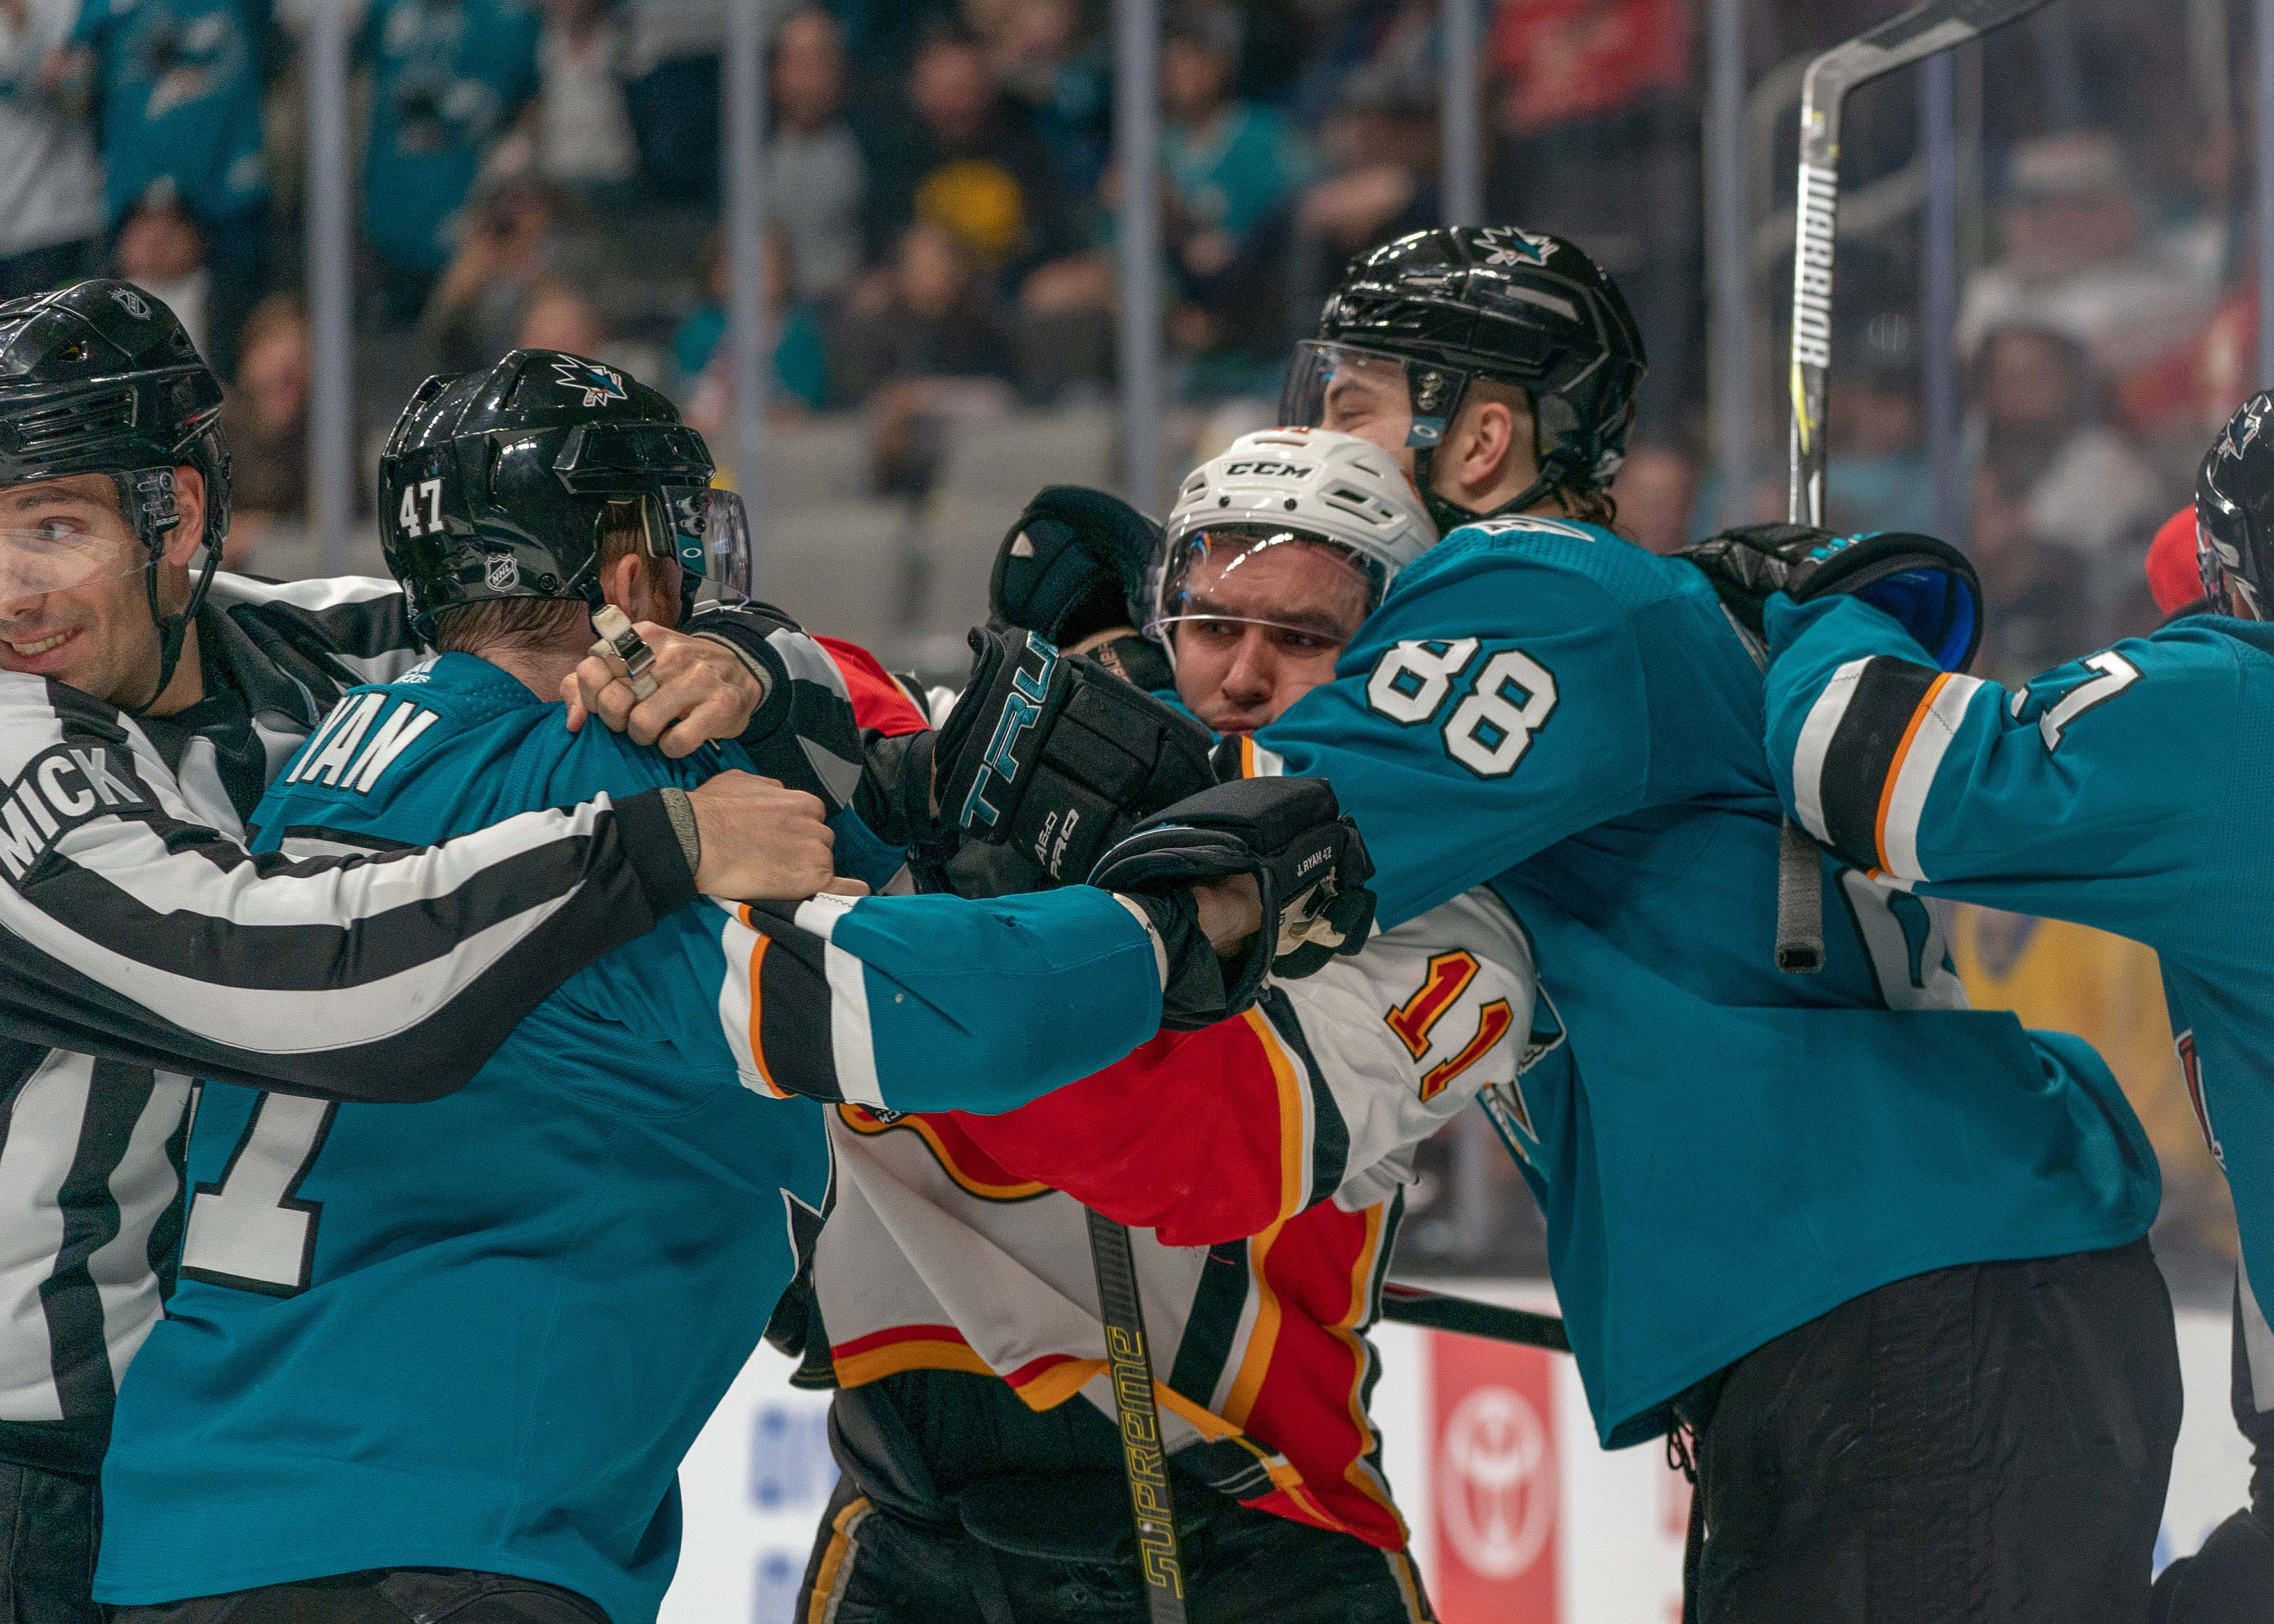 Mar 31, 2019; San Jose, CA, USA; San Jose Sharks defenseman Brent Burns (88) attempt to restrain Calgary Flames center Mikael Backlund (11) during the fight during the third period at SAP Center at San Jose. Mandatory Credit: Neville E. Guard